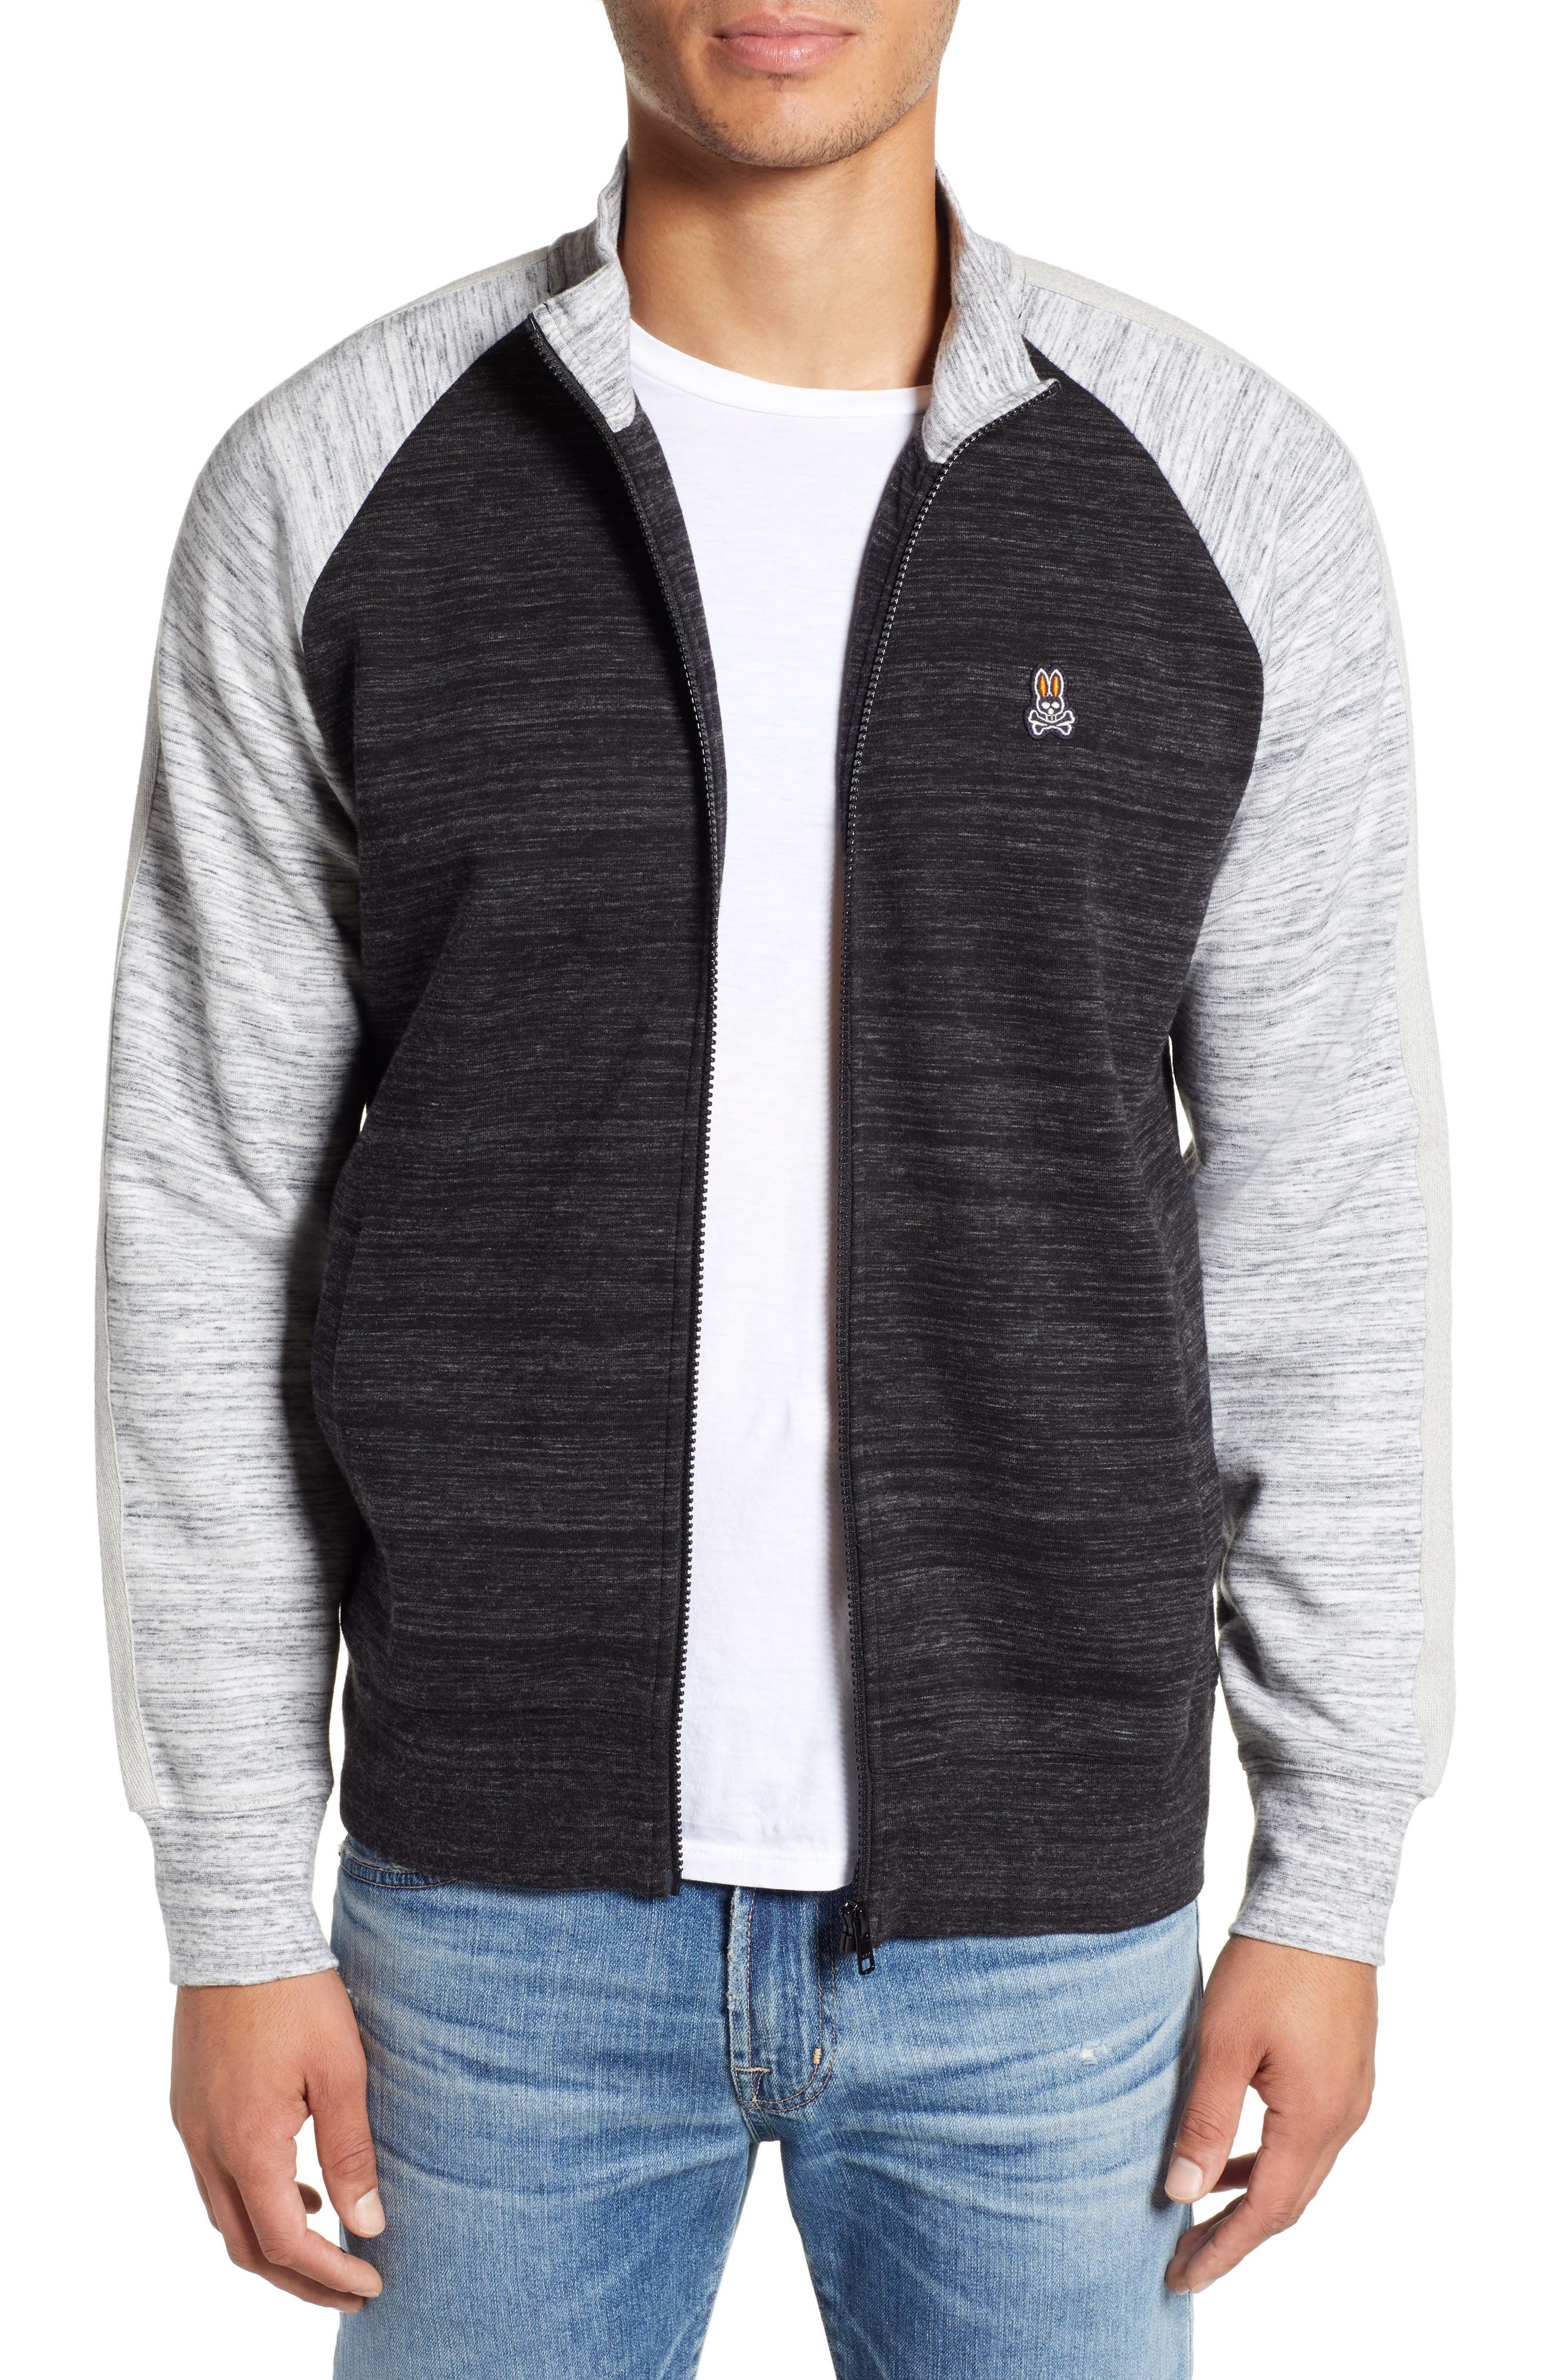 Bedford Track Jacket,                             Main thumbnail 1, color,                             HEATHER GRANITE